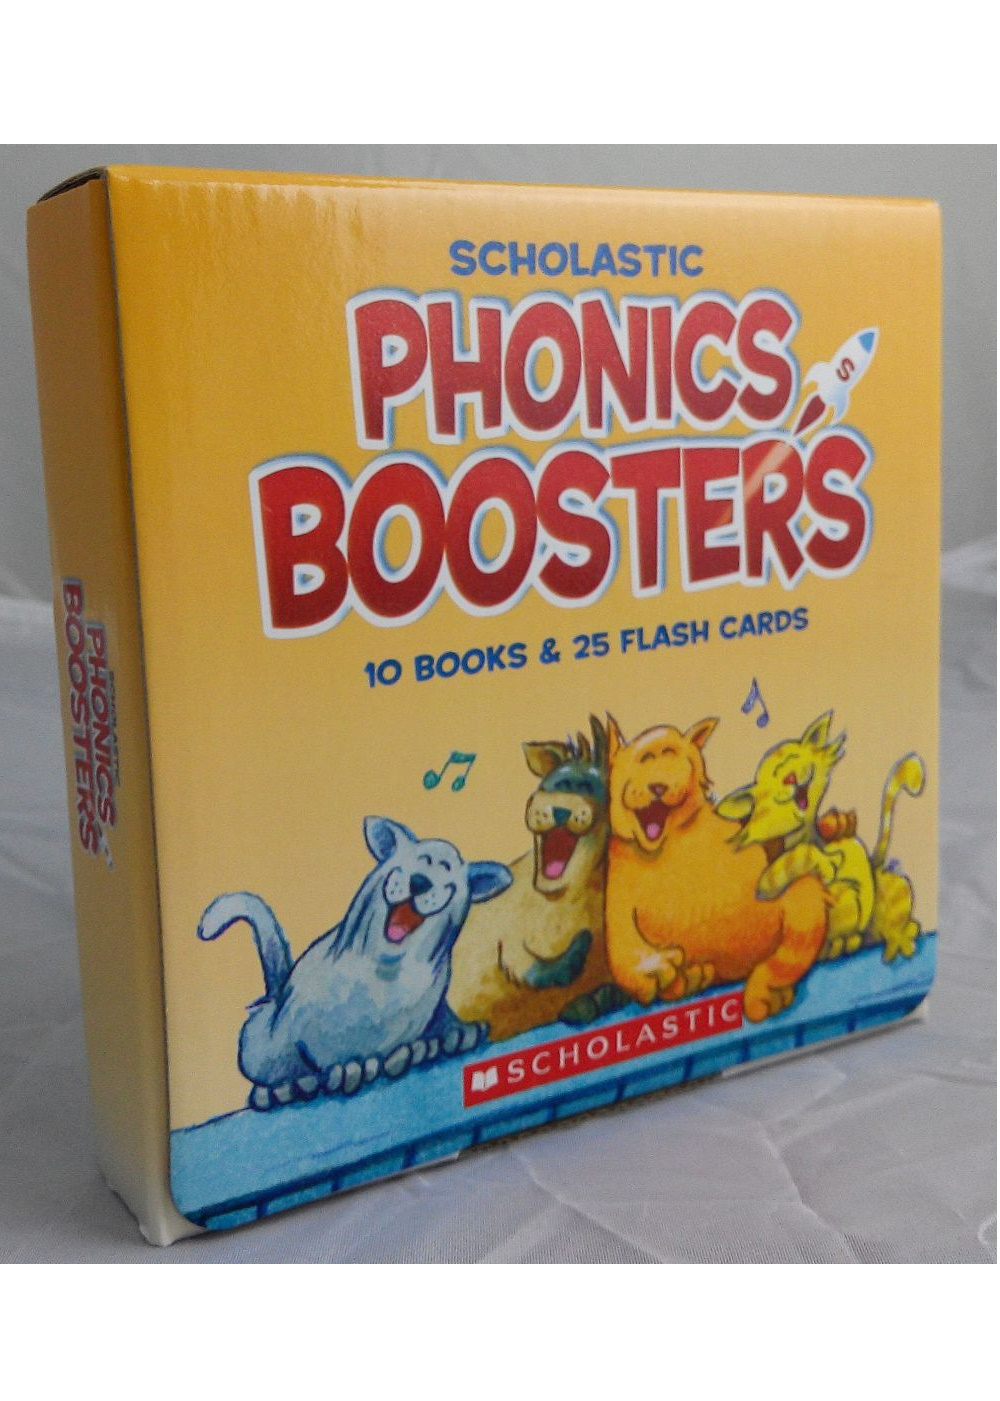 Scholastic Phonics Boosters Set #1 with CD (10 Books & 25 Flash Cards)